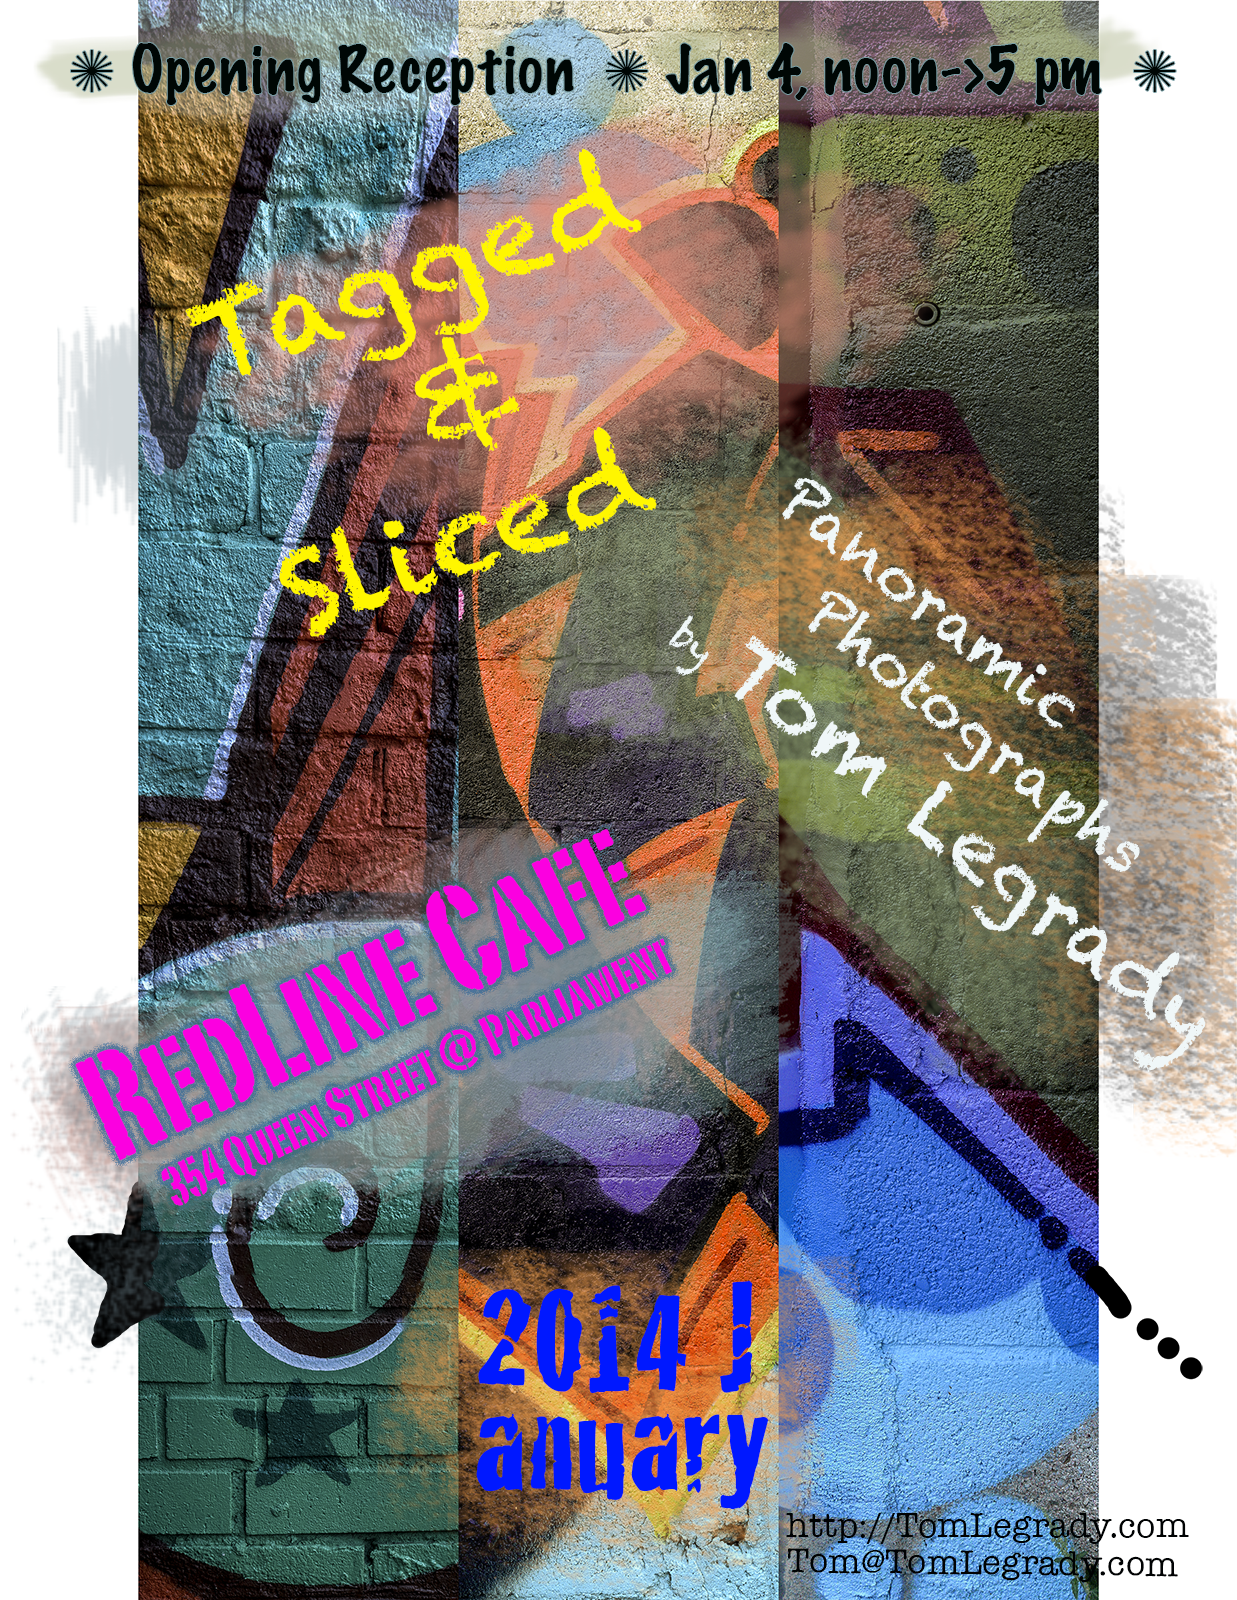 Invitation postcard for 'Tagged & Sliced' show